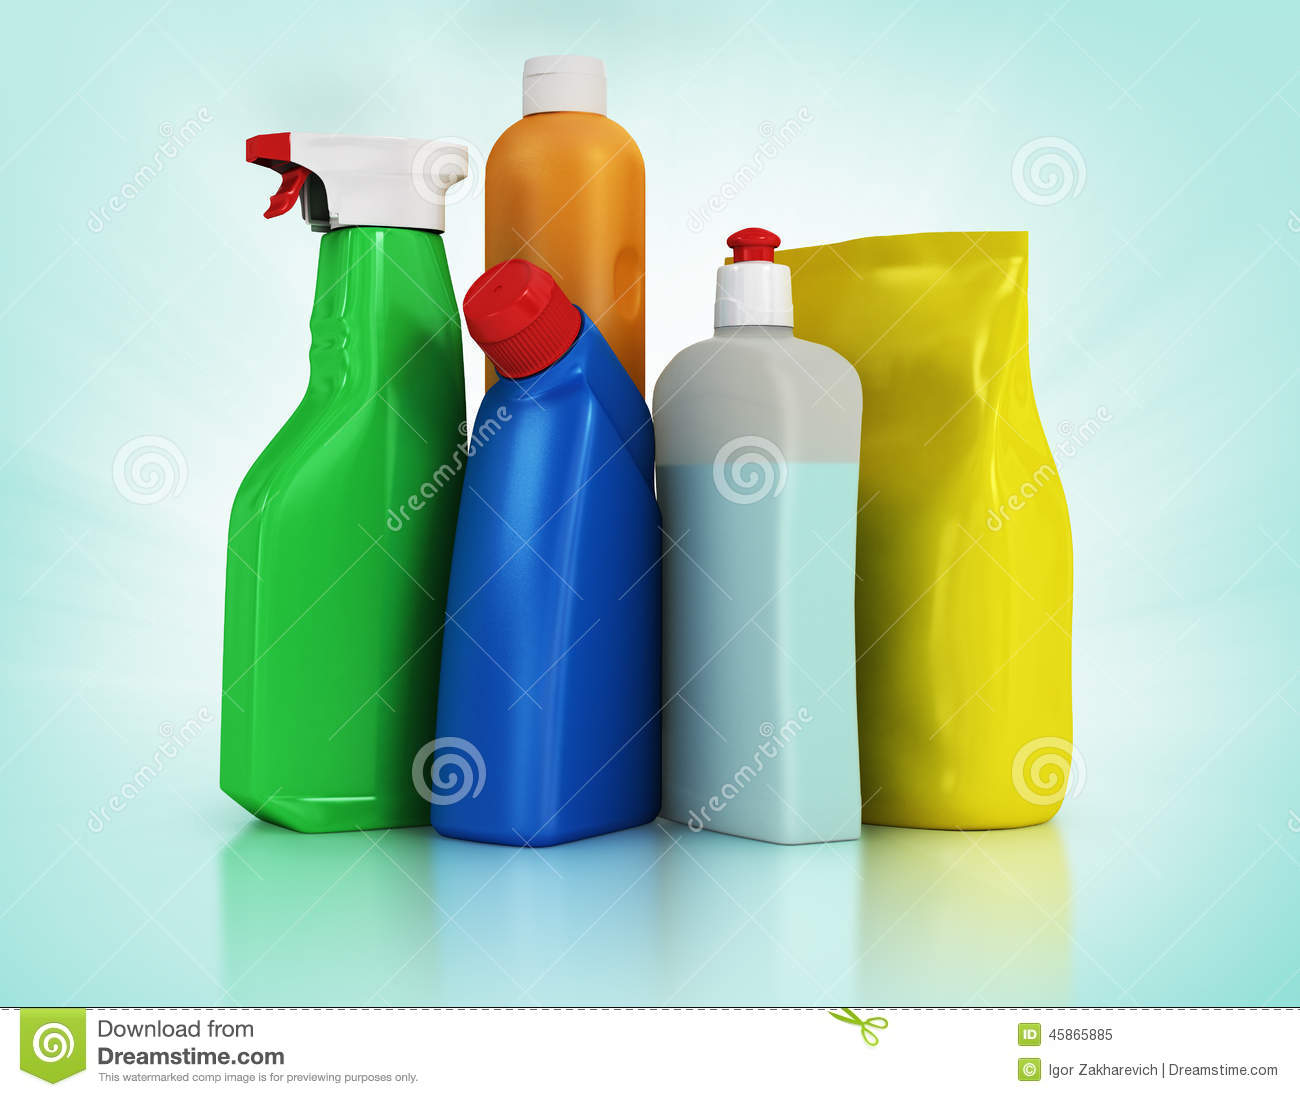 Household Supplies: Cleaning Supplies. Household Chemical Detergent Bottles